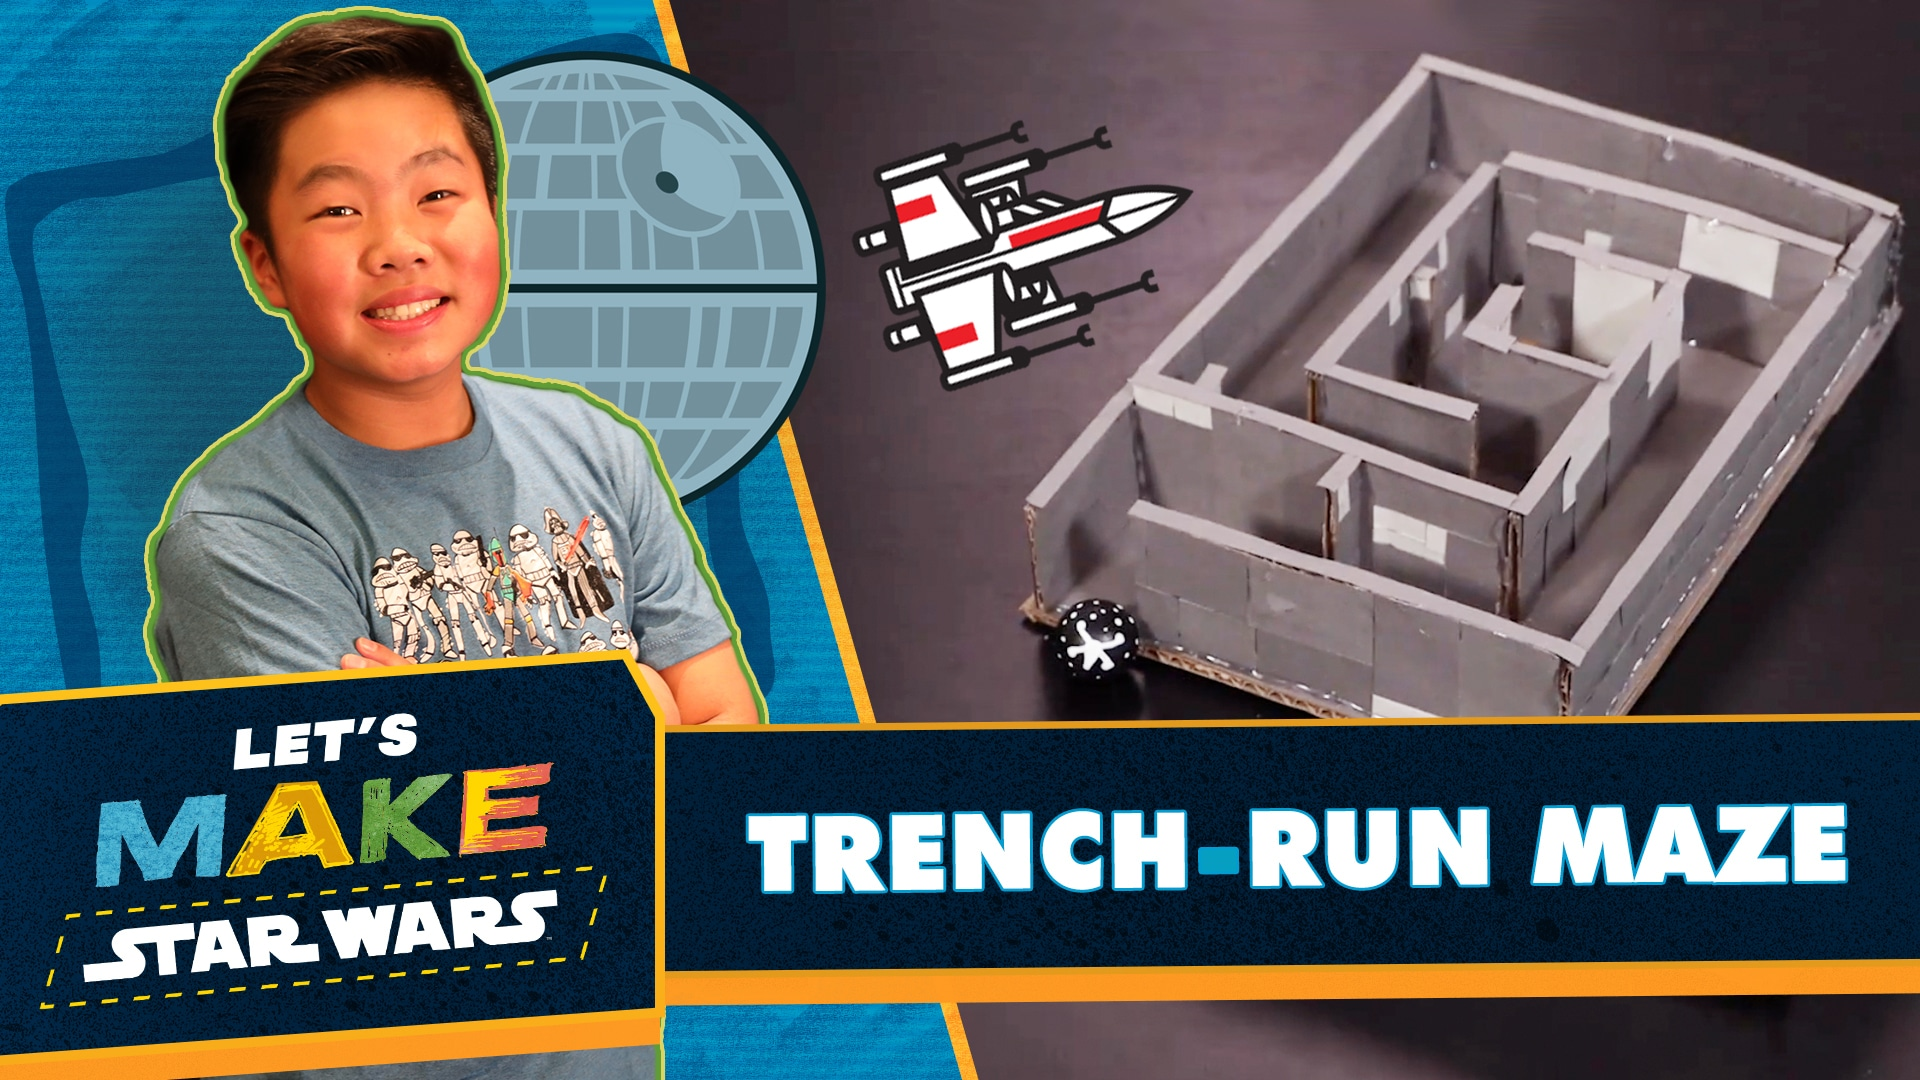 Let's Make Star Wars - How to Make a Trench Run Marble Puzzle